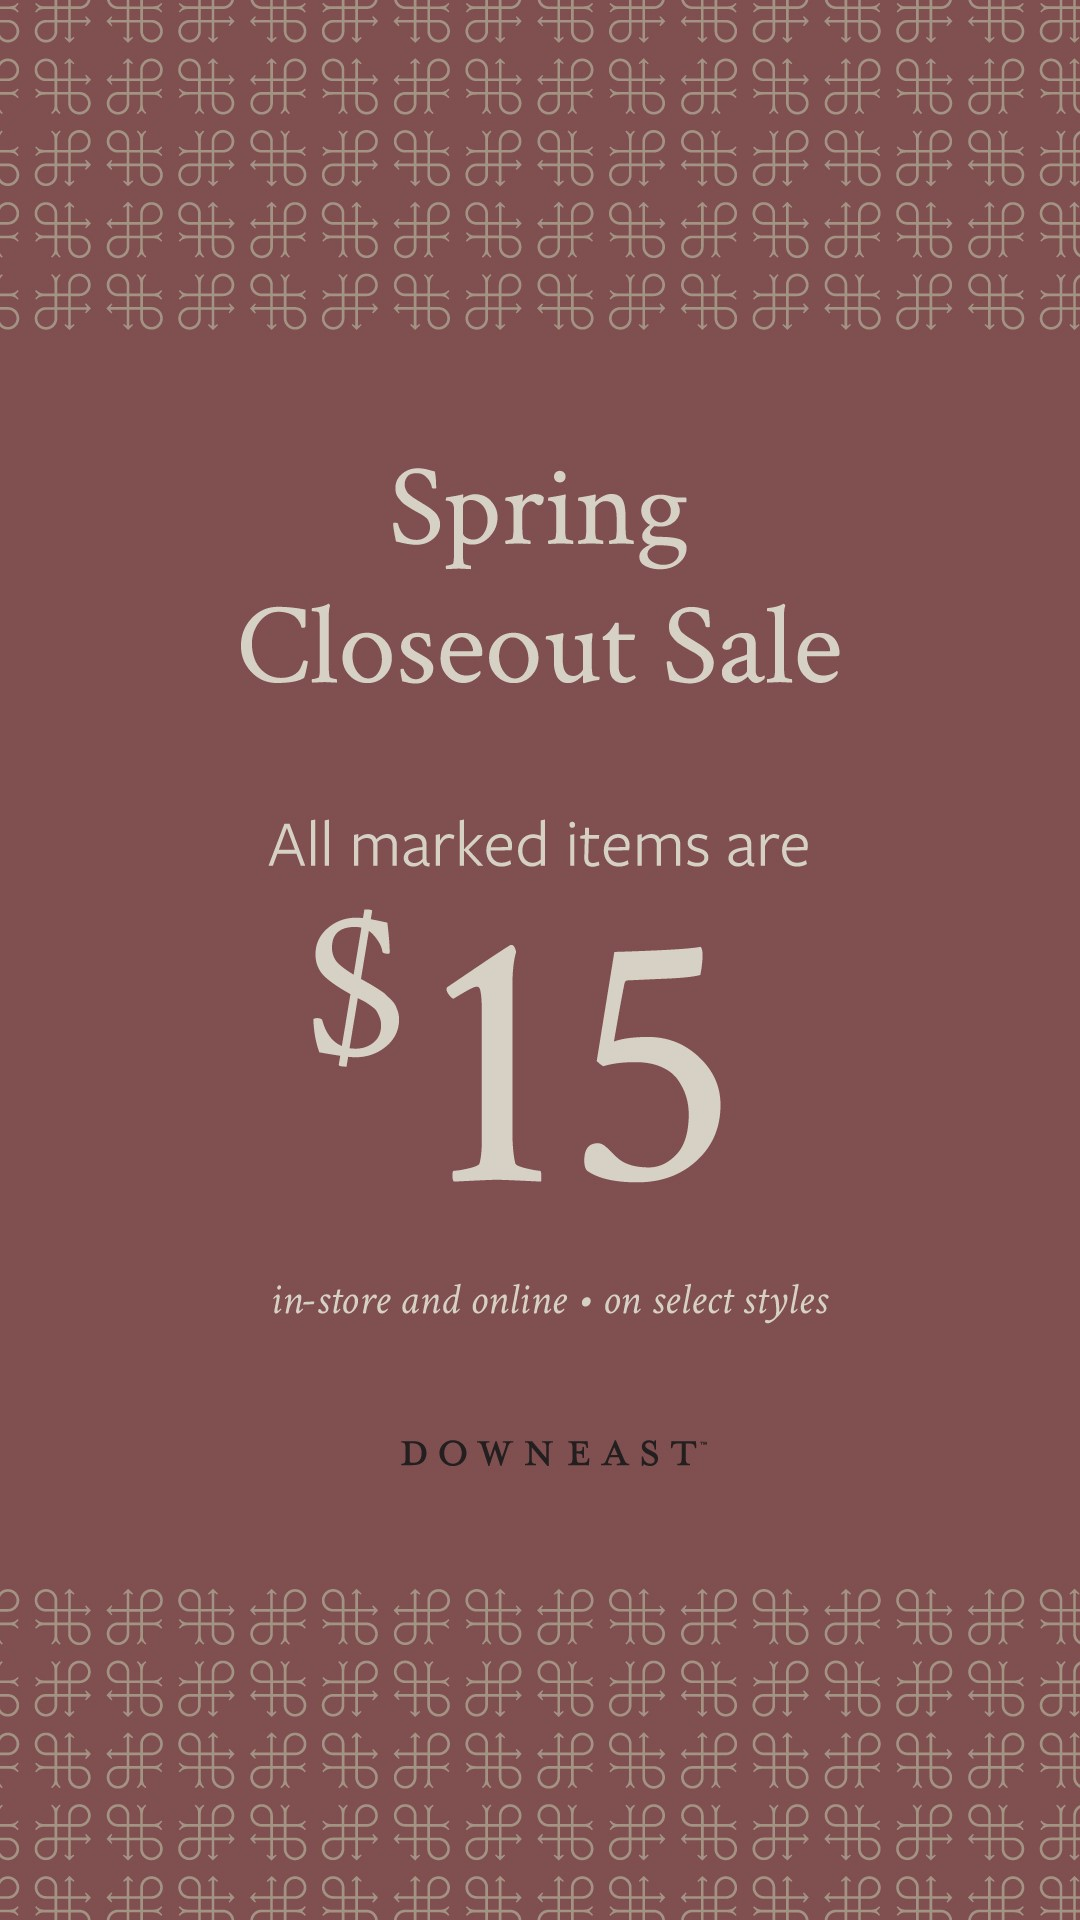 Spring Closeout Sale from Downeast